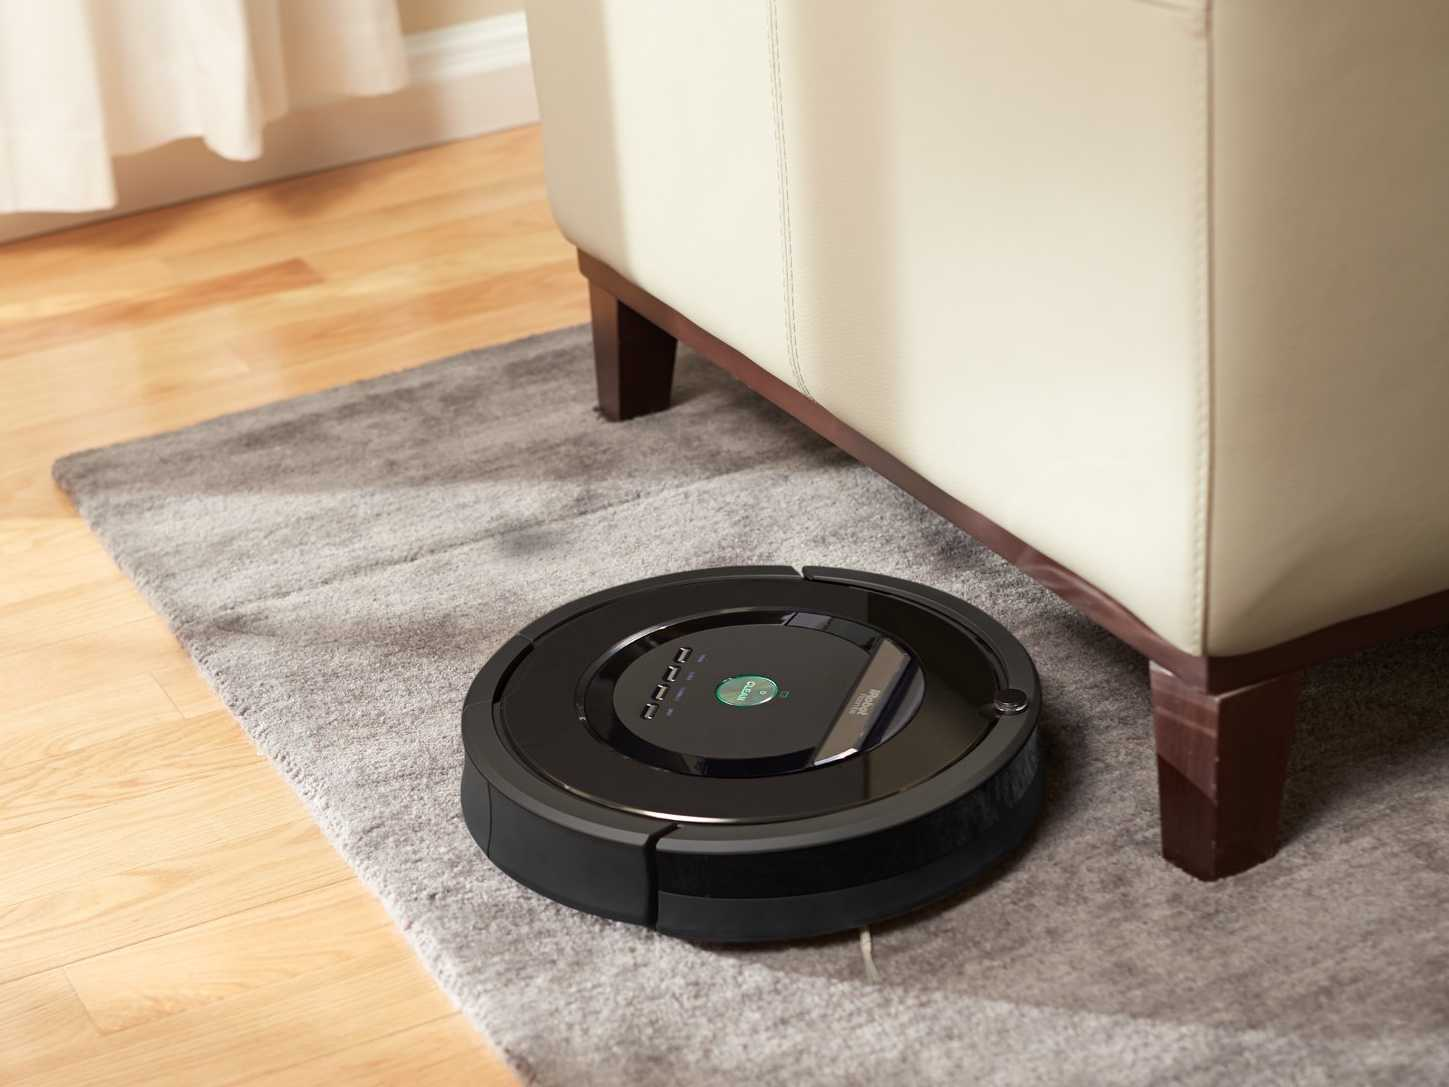 Read Our Top 10 Best Robot Vacuum Reviews New For 2018